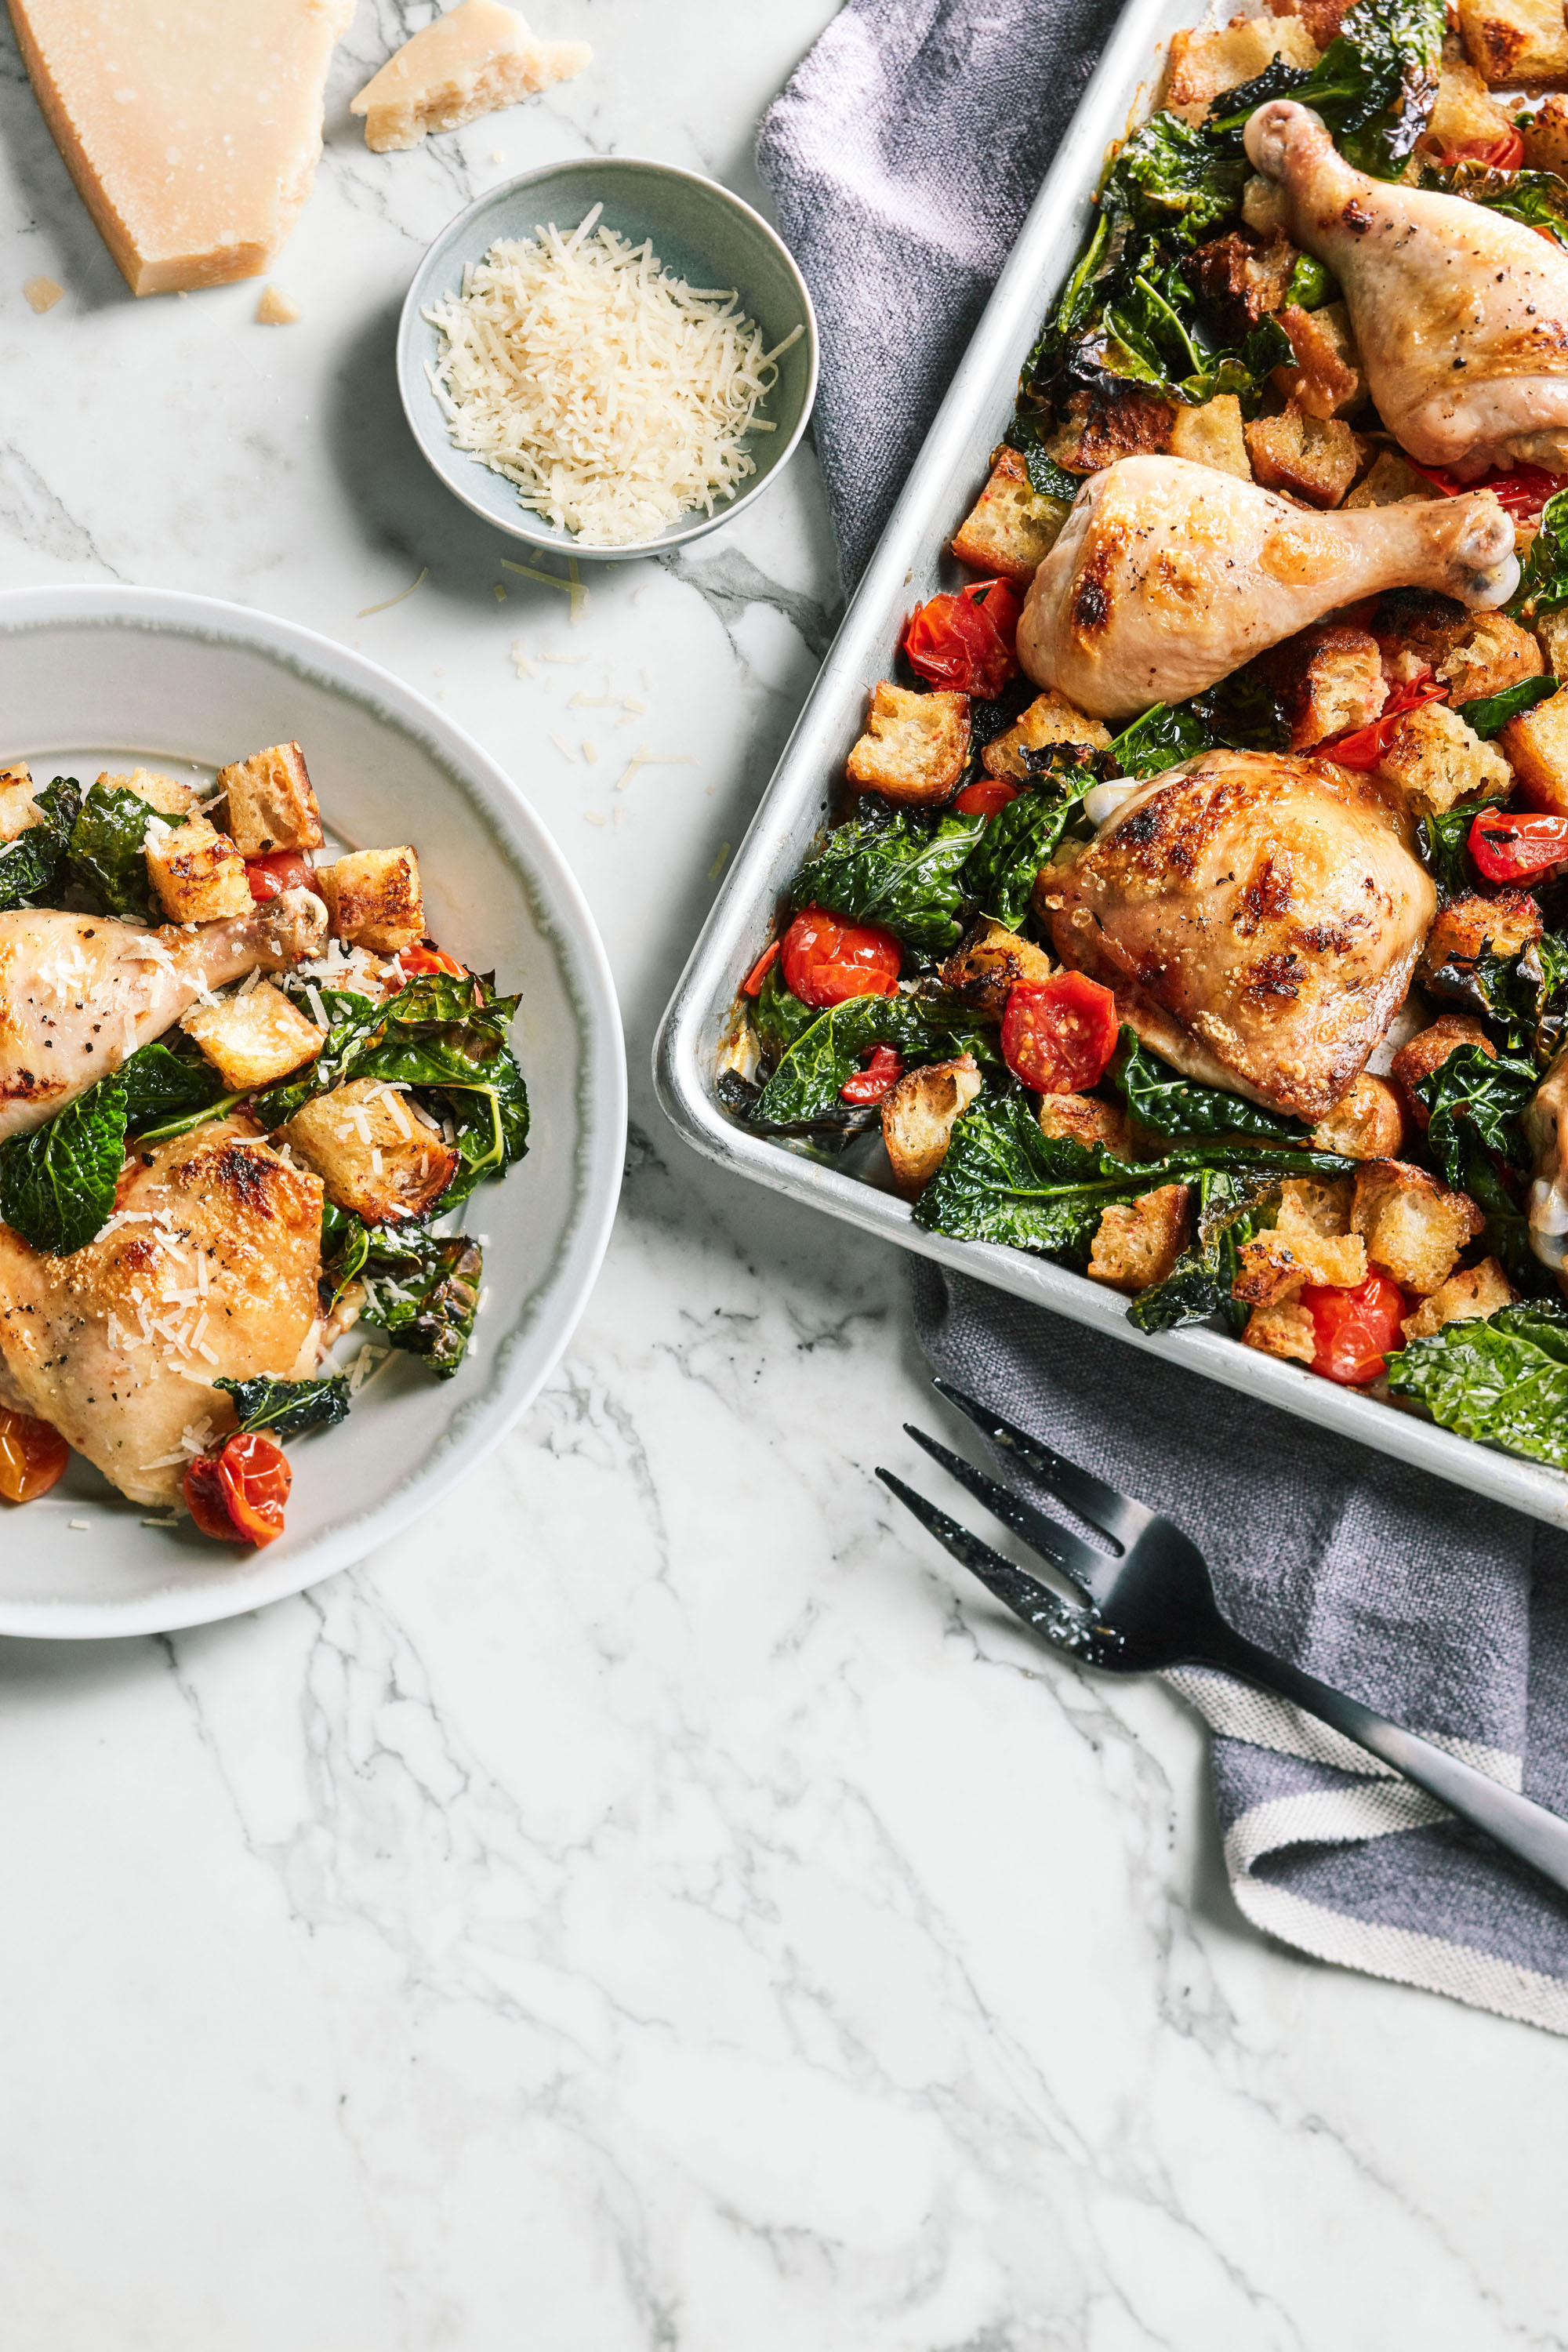 plate and sheet of chicken and kale dinner on marble table top